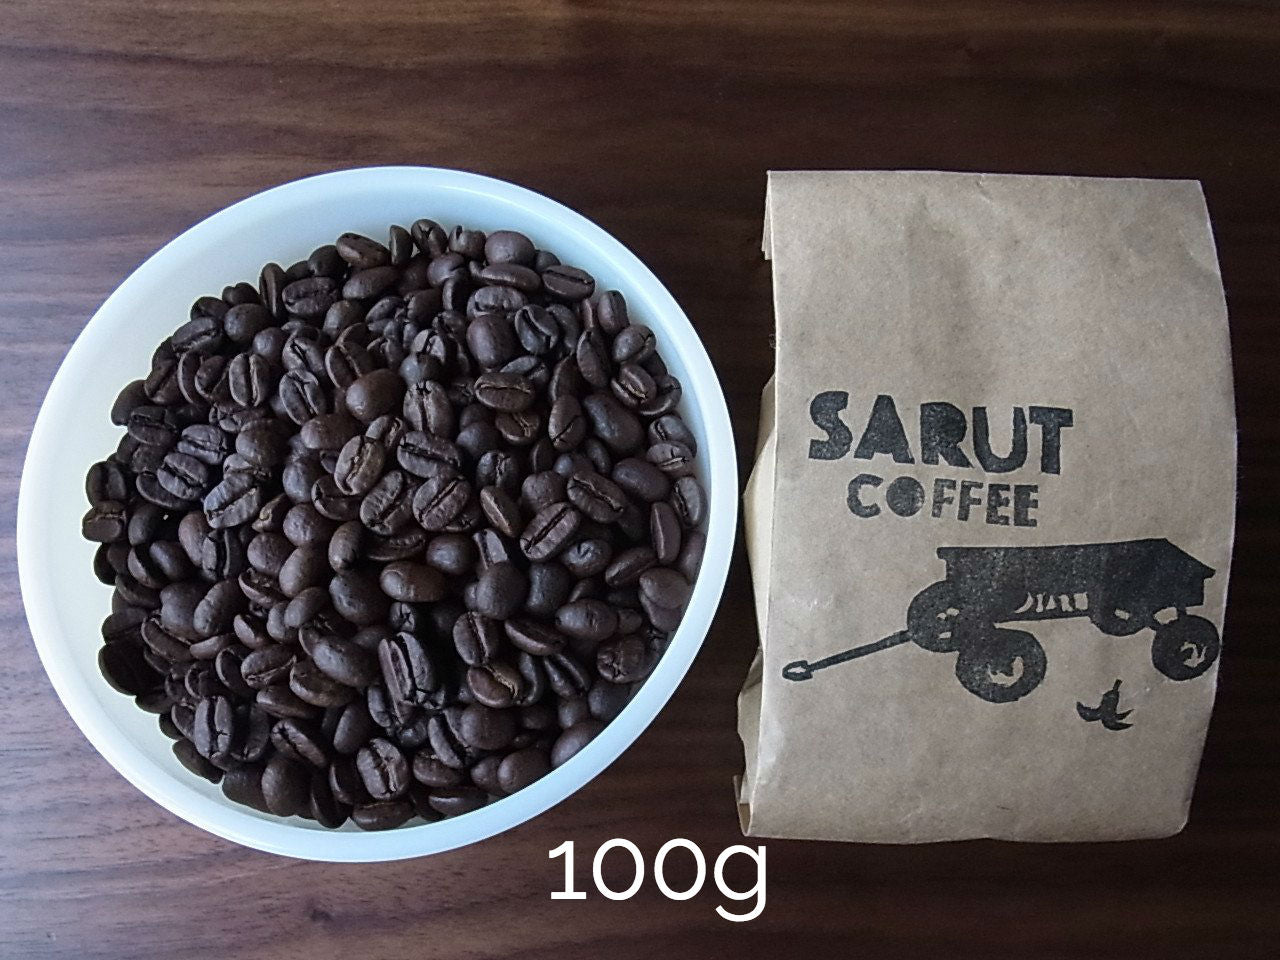 SARUT COFFEE Original Blend 3